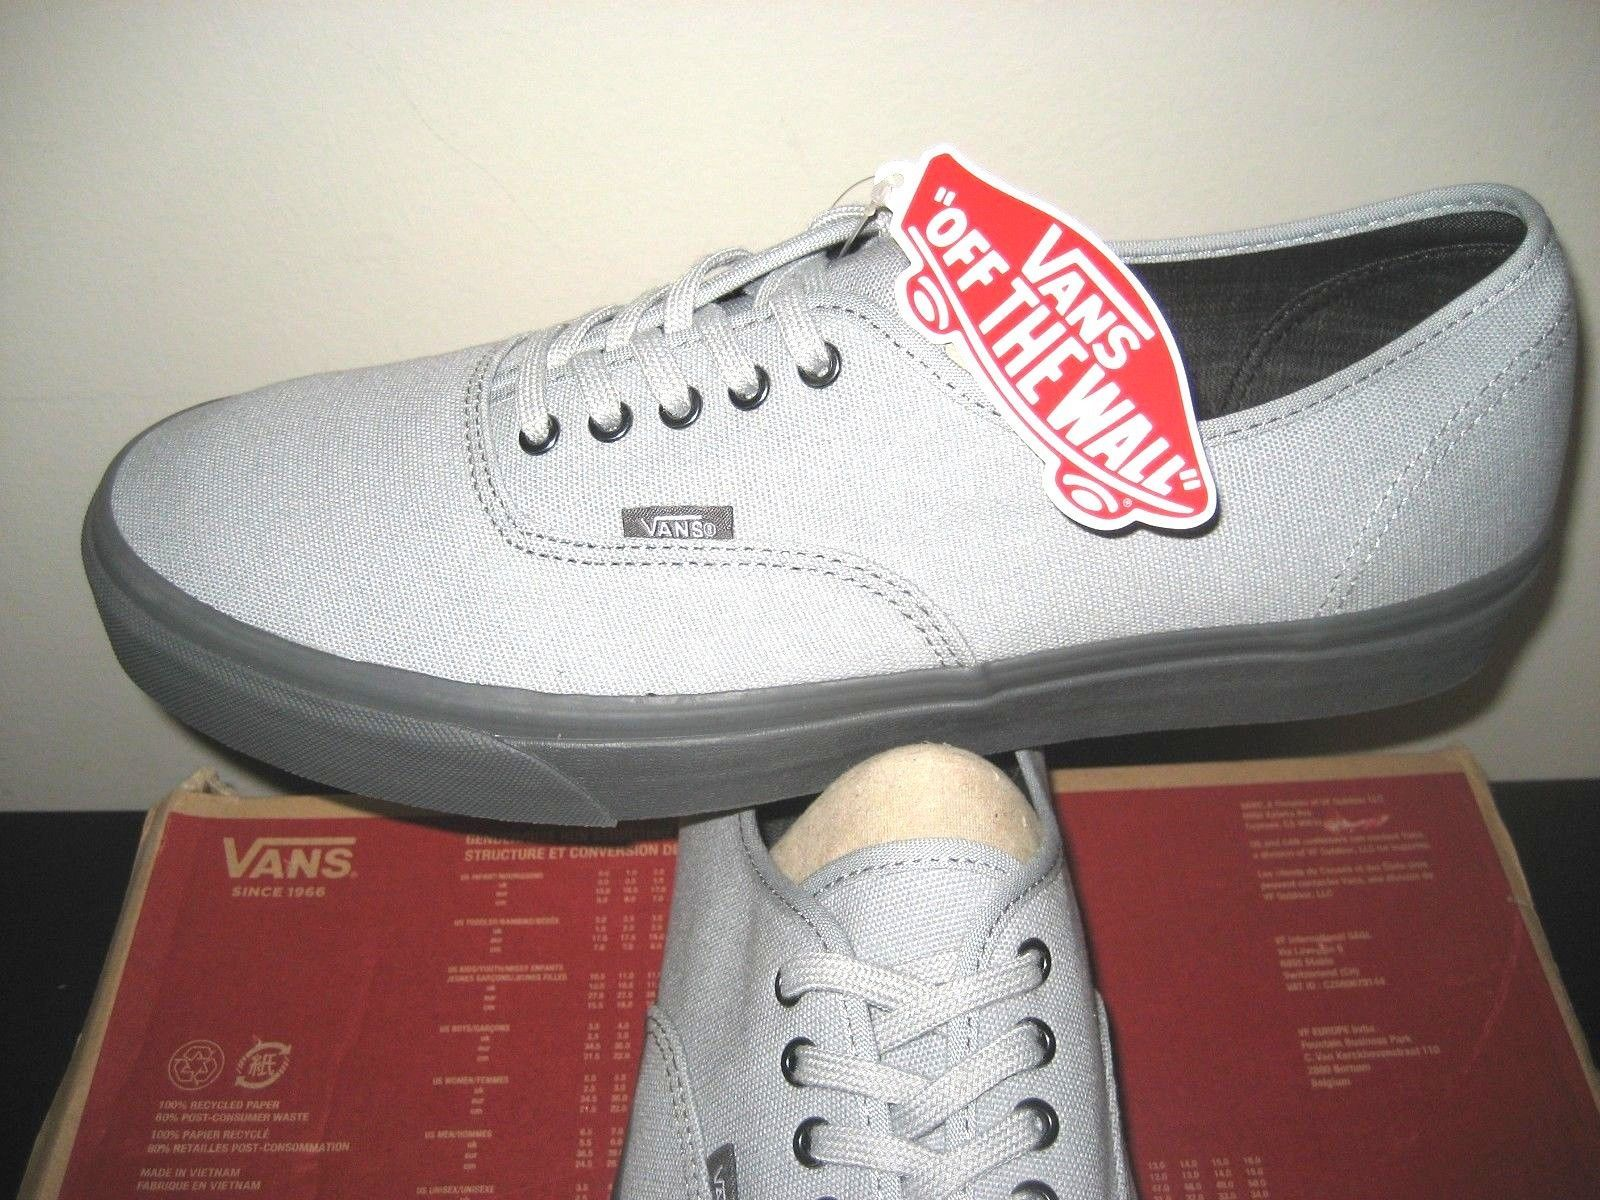 094e41a396d031 S l1600. S l1600. Previous. Vans Mens Authentic C D High Rise Pewter Grey  Canvas Skate Boat shoes Size 13